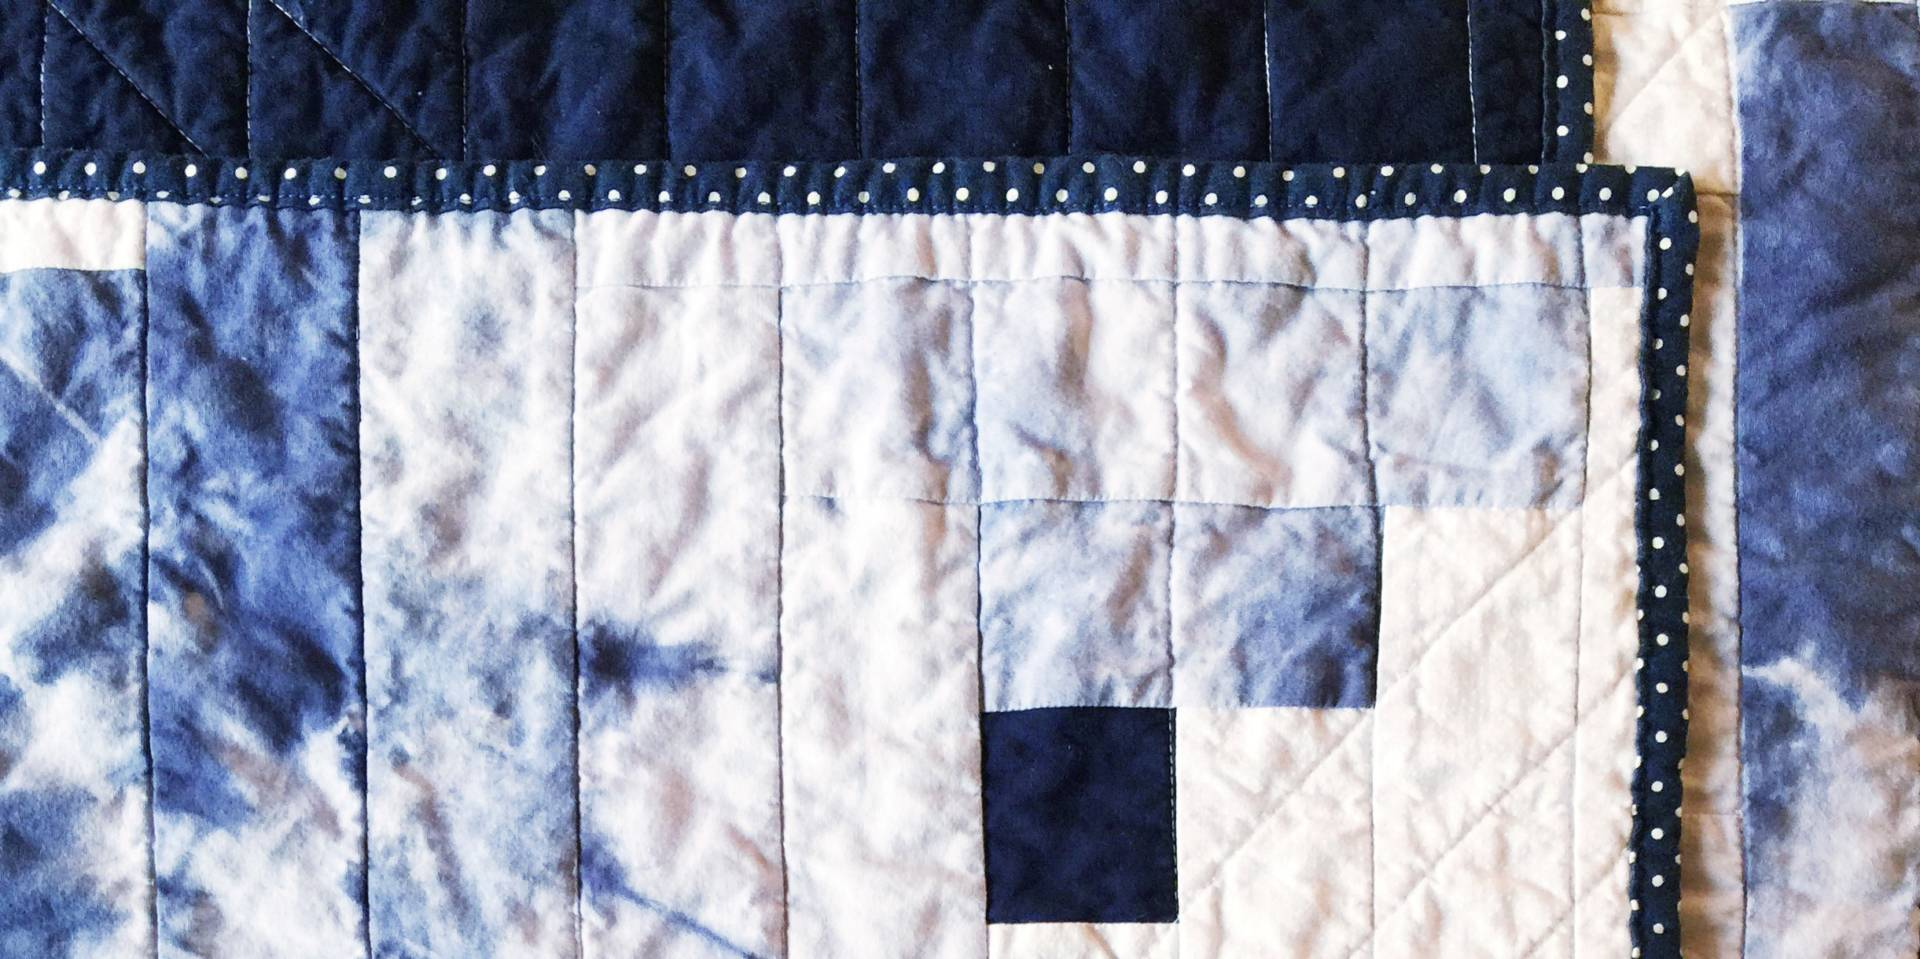 Finished Shibori Tie Dye Quilt!